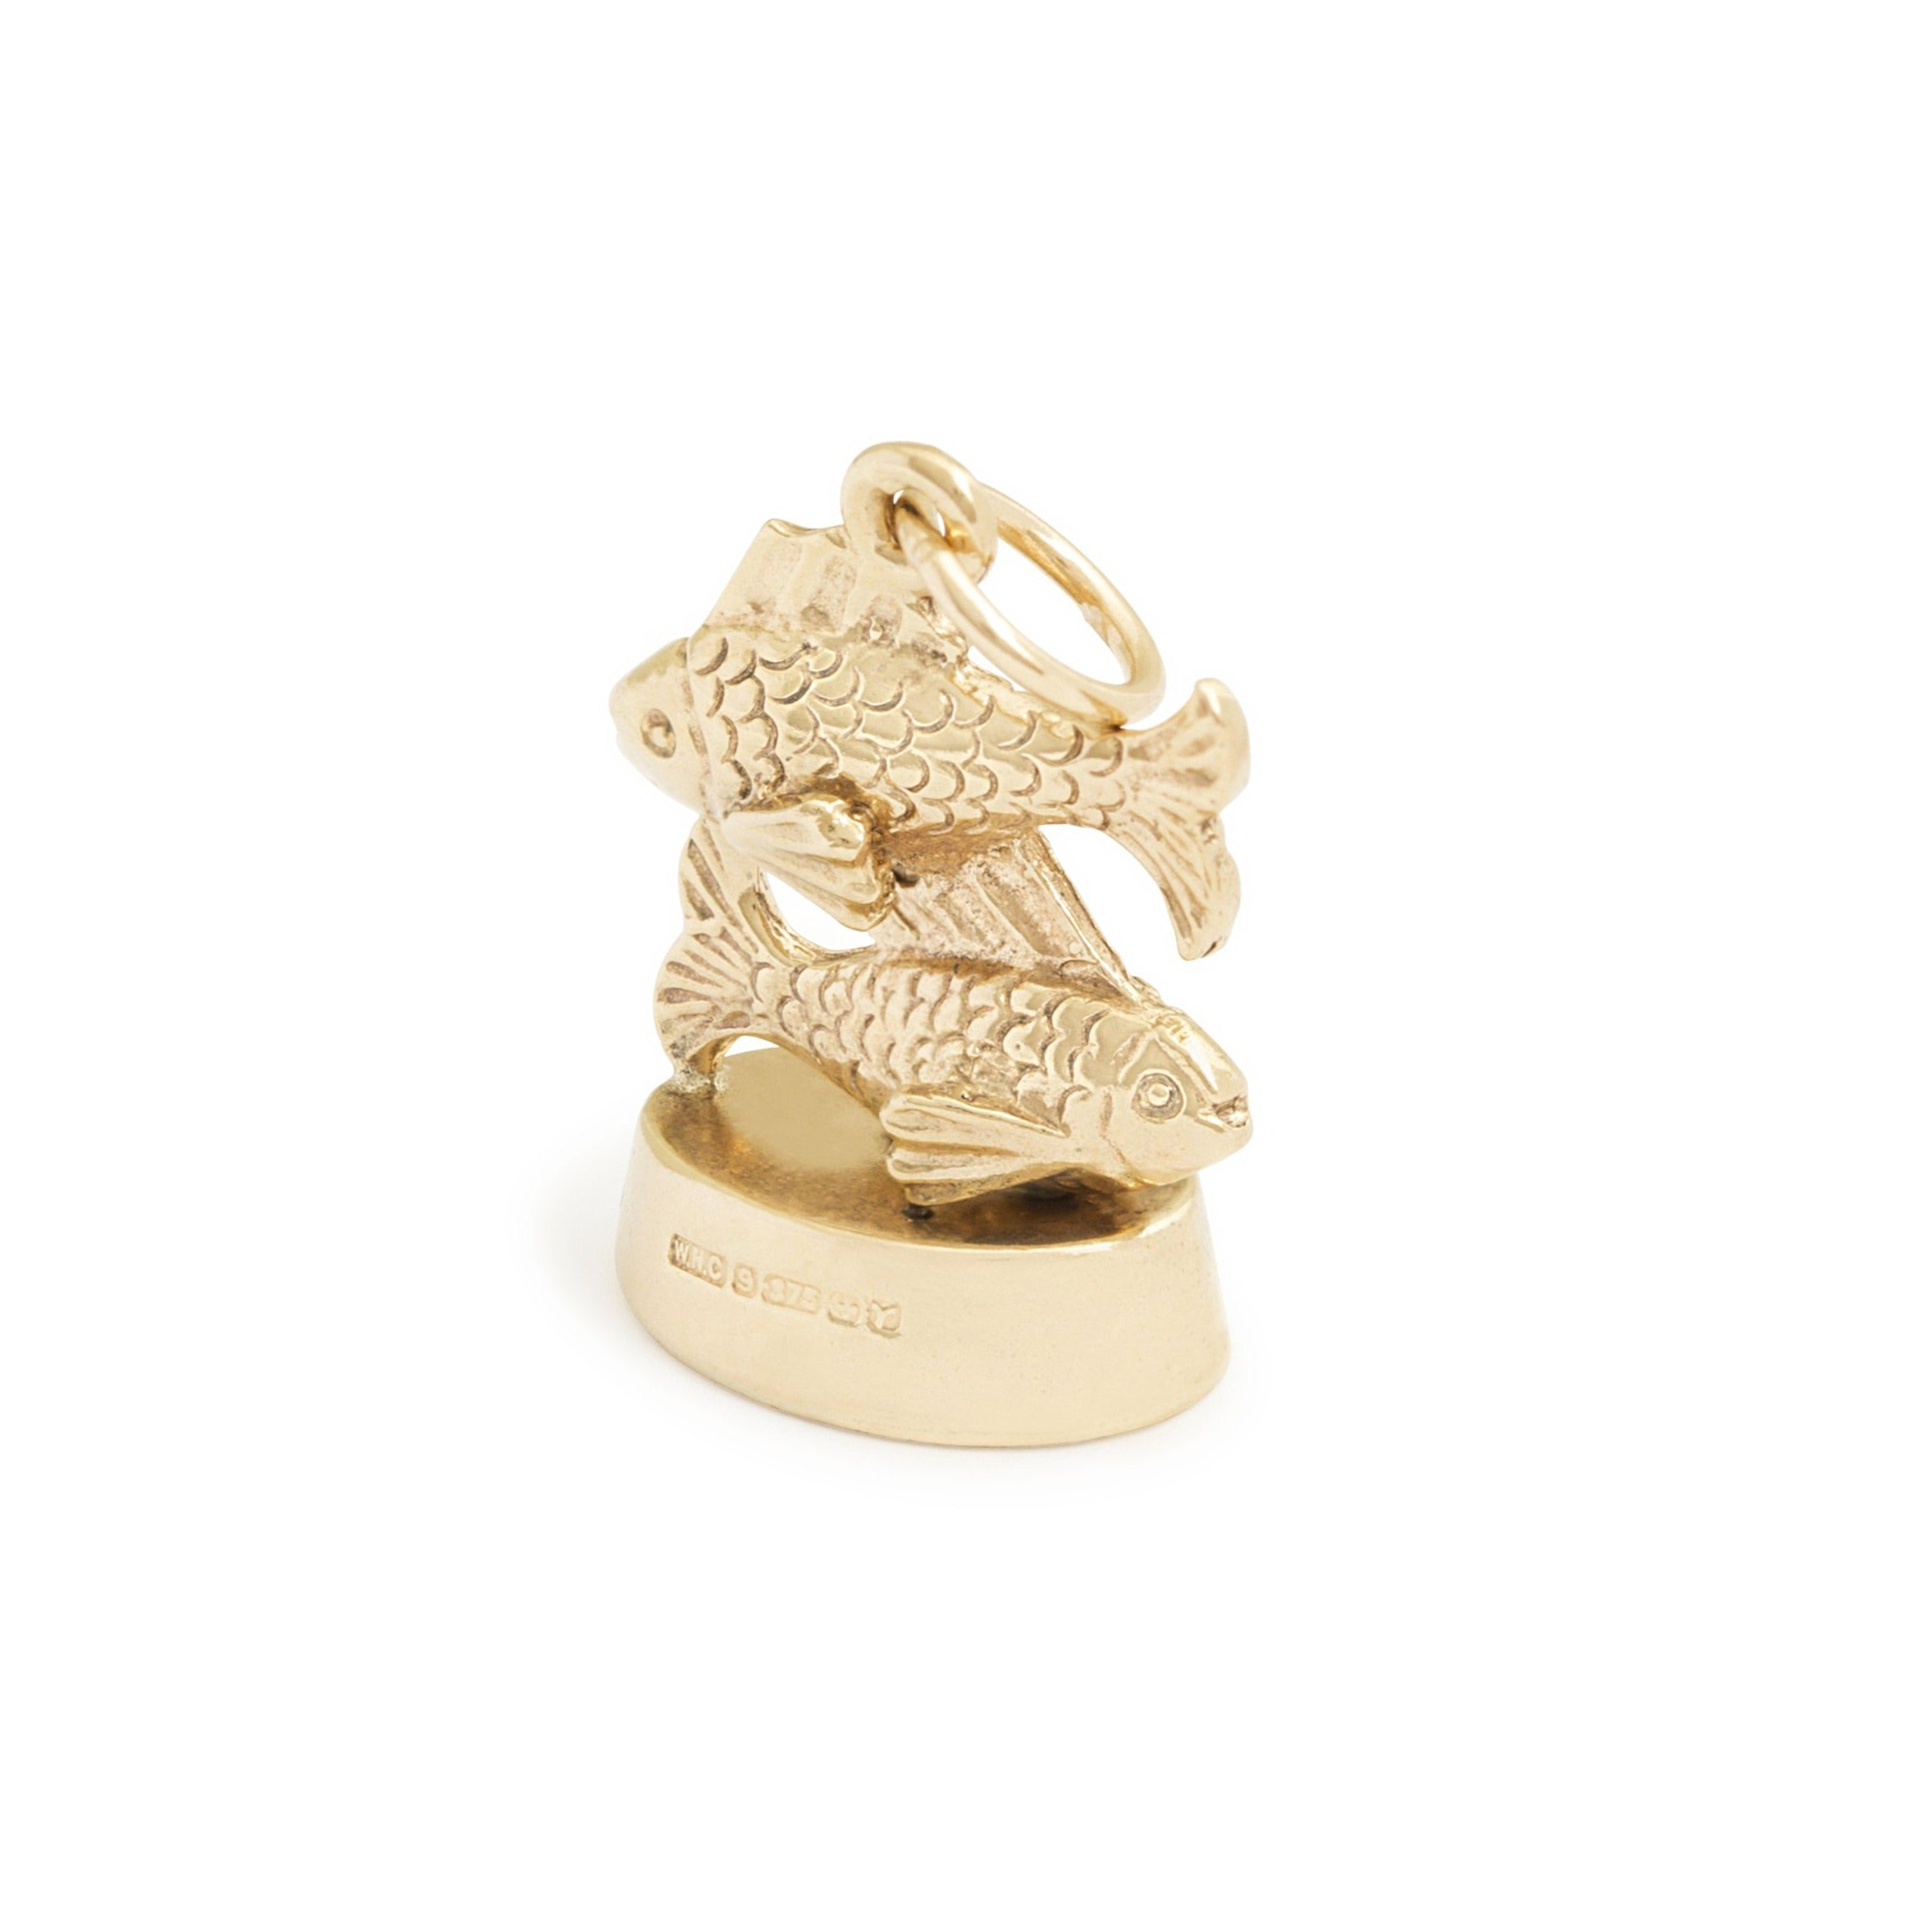 English Pisces 3-Dimensional 9k Gold Zodiac Charm